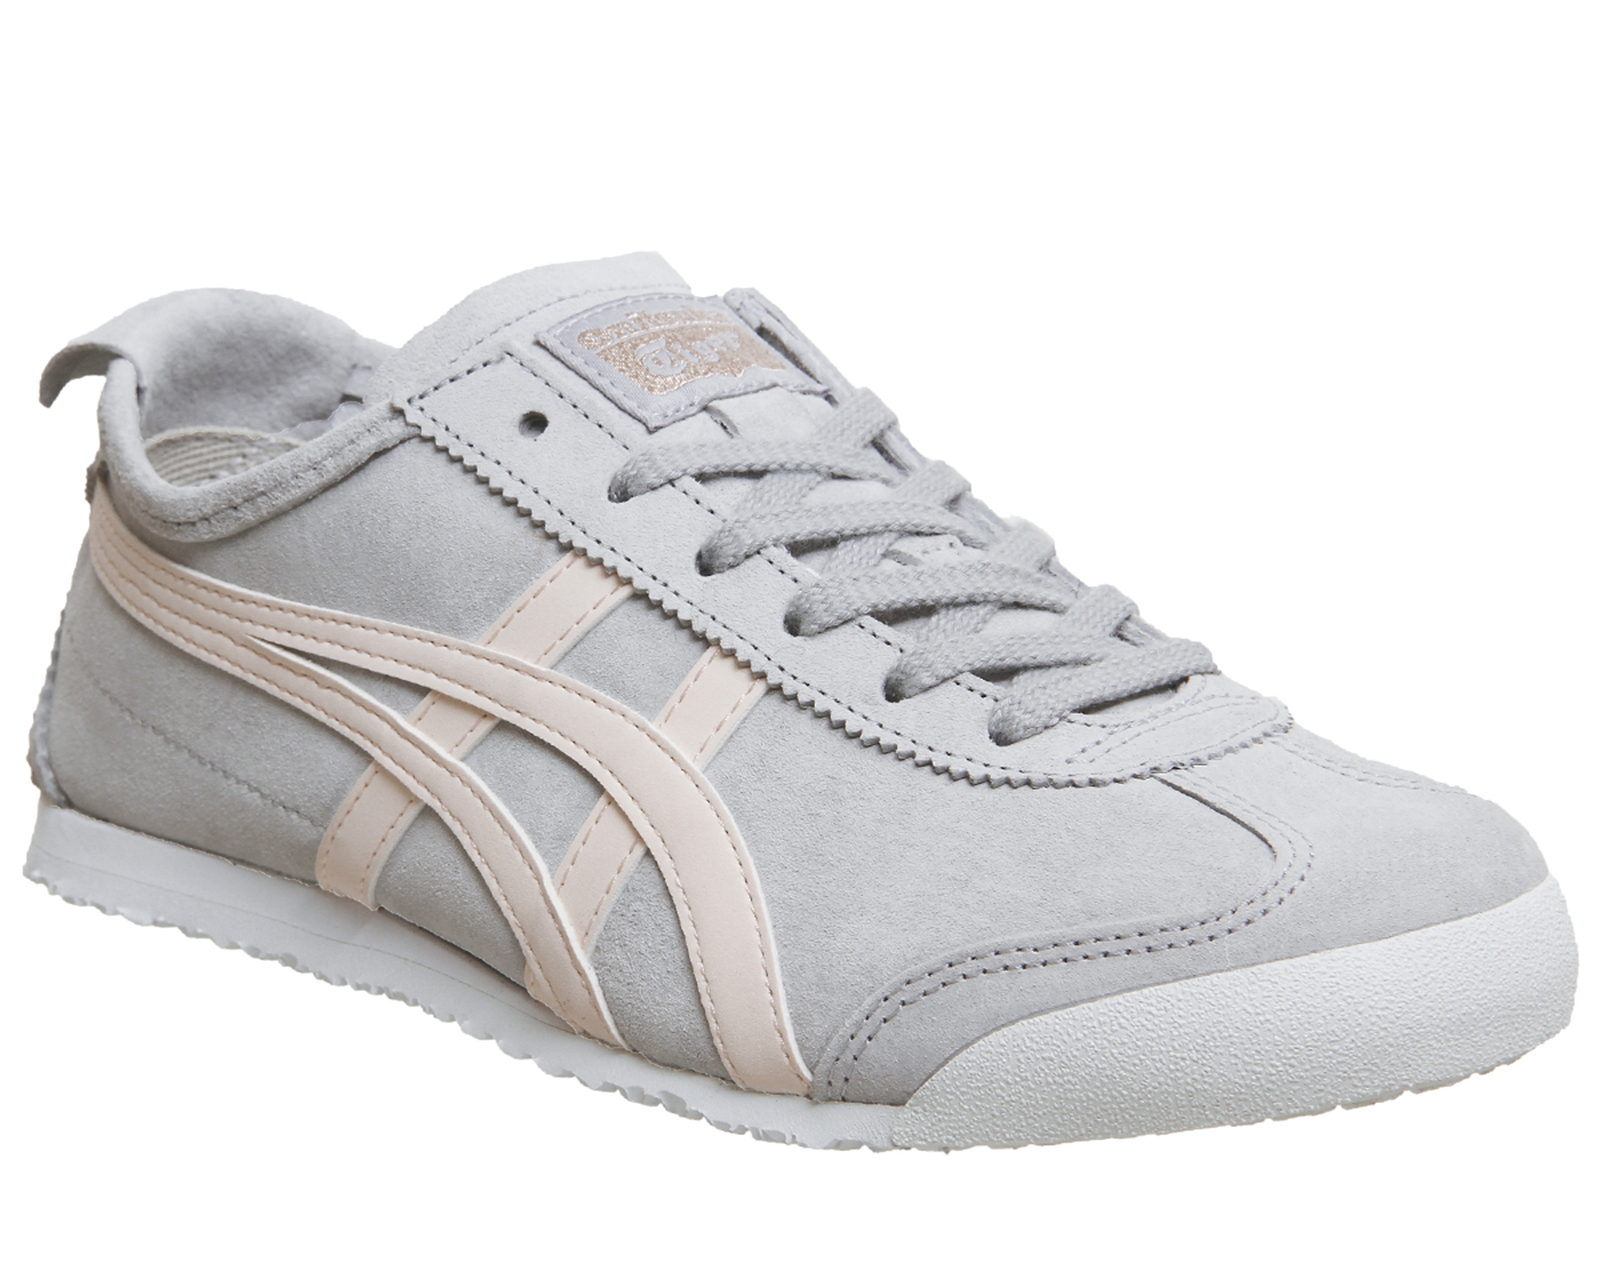 26fd865ce29d Sentinel Womens Onitsuka Tiger Mexico 66 Trainers Grey Pink Suede Exclusive  Trainers Shoe